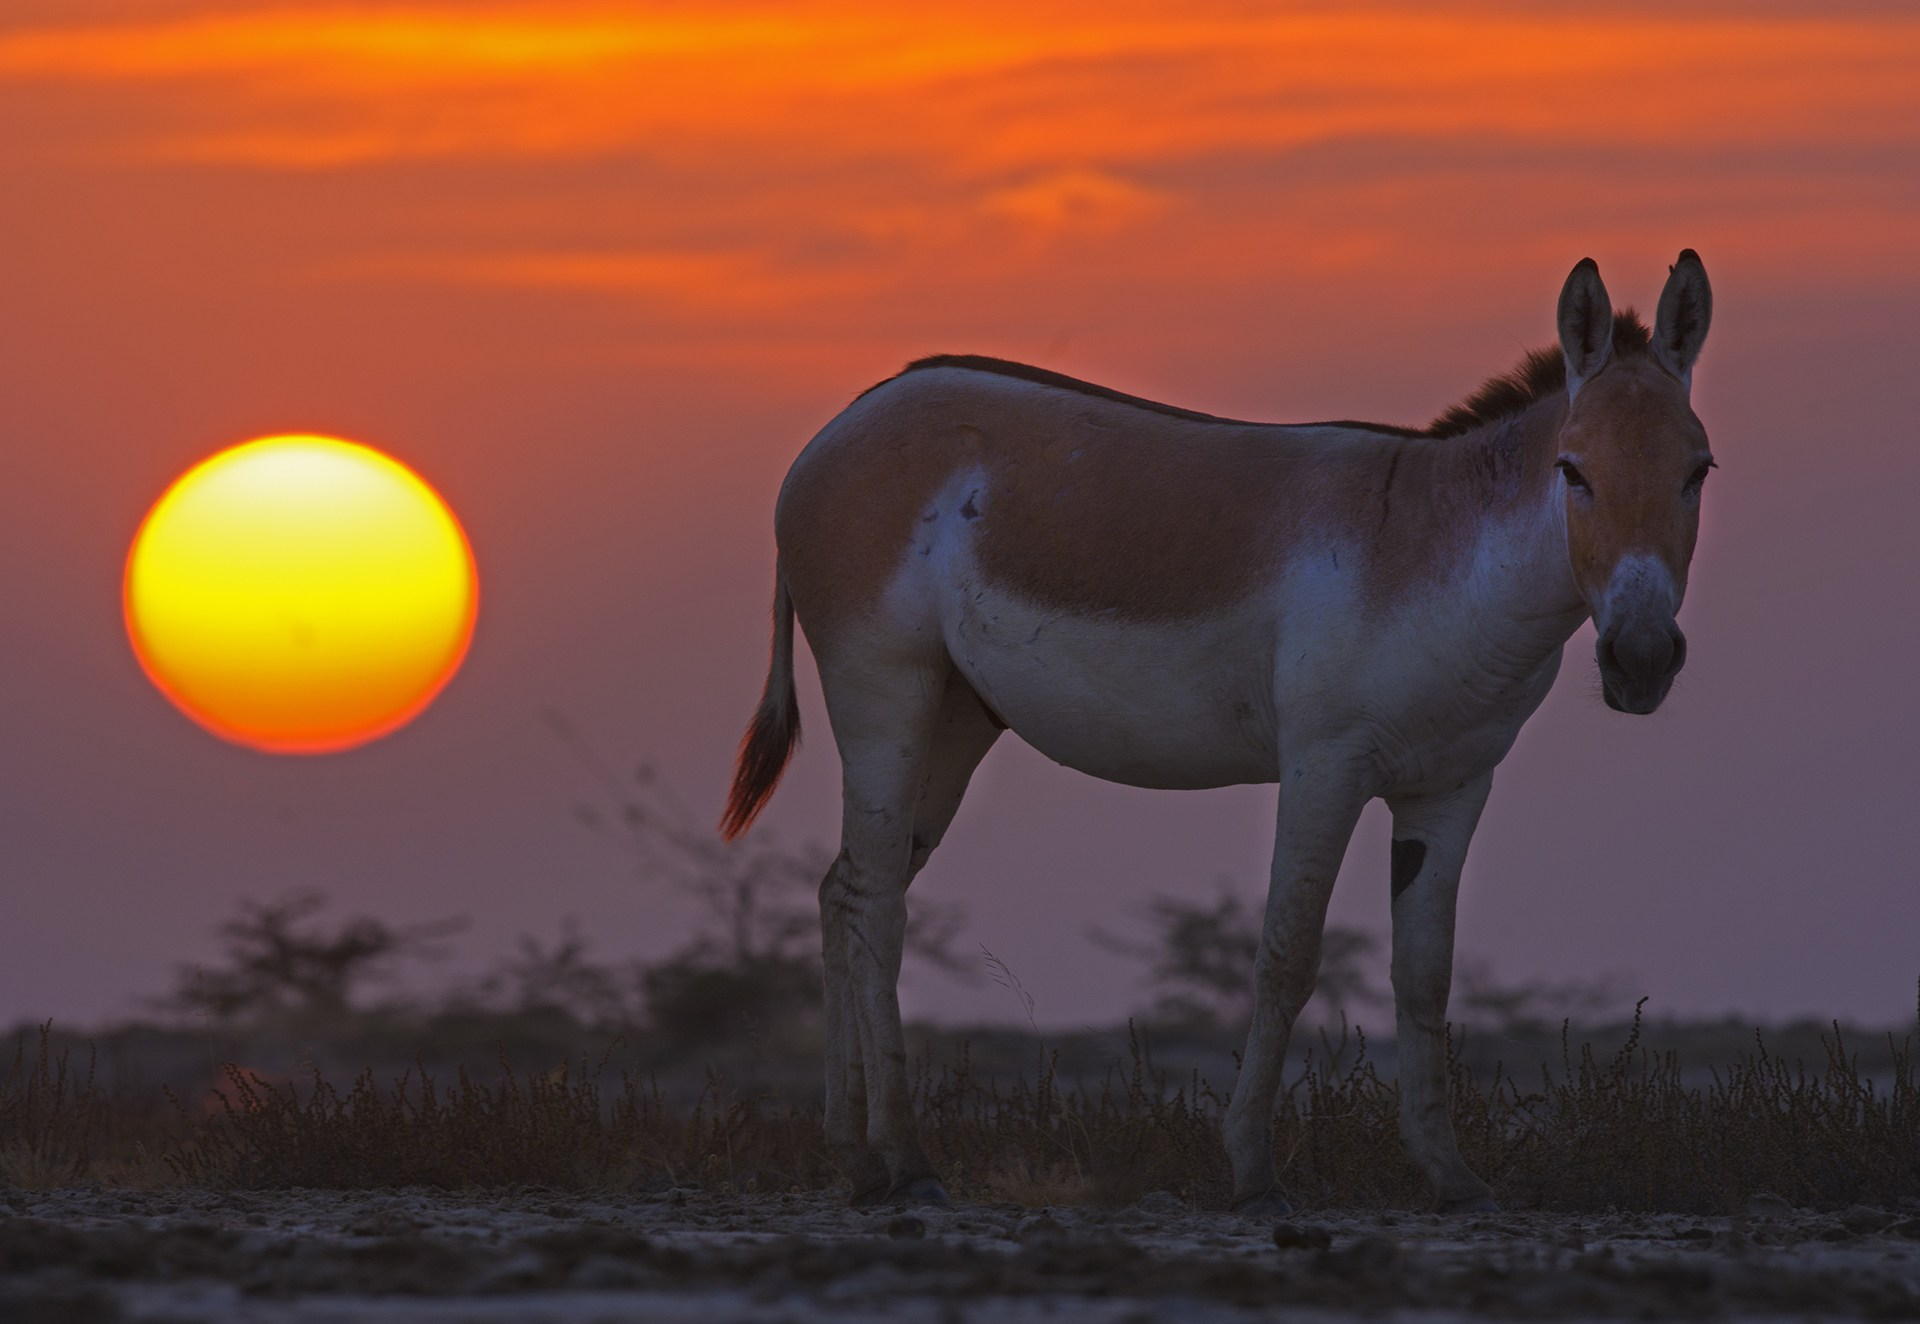 """The Little Rann provides ample grass for the grazing needs of the wild ass. However, in summer, when grass cover is reduced, it may also feed on the leaves and pods of the invasive species Prosopis, what locals refer to as gando bawal or """"mad tree"""". Photo: Dhritiman Mukherjee"""